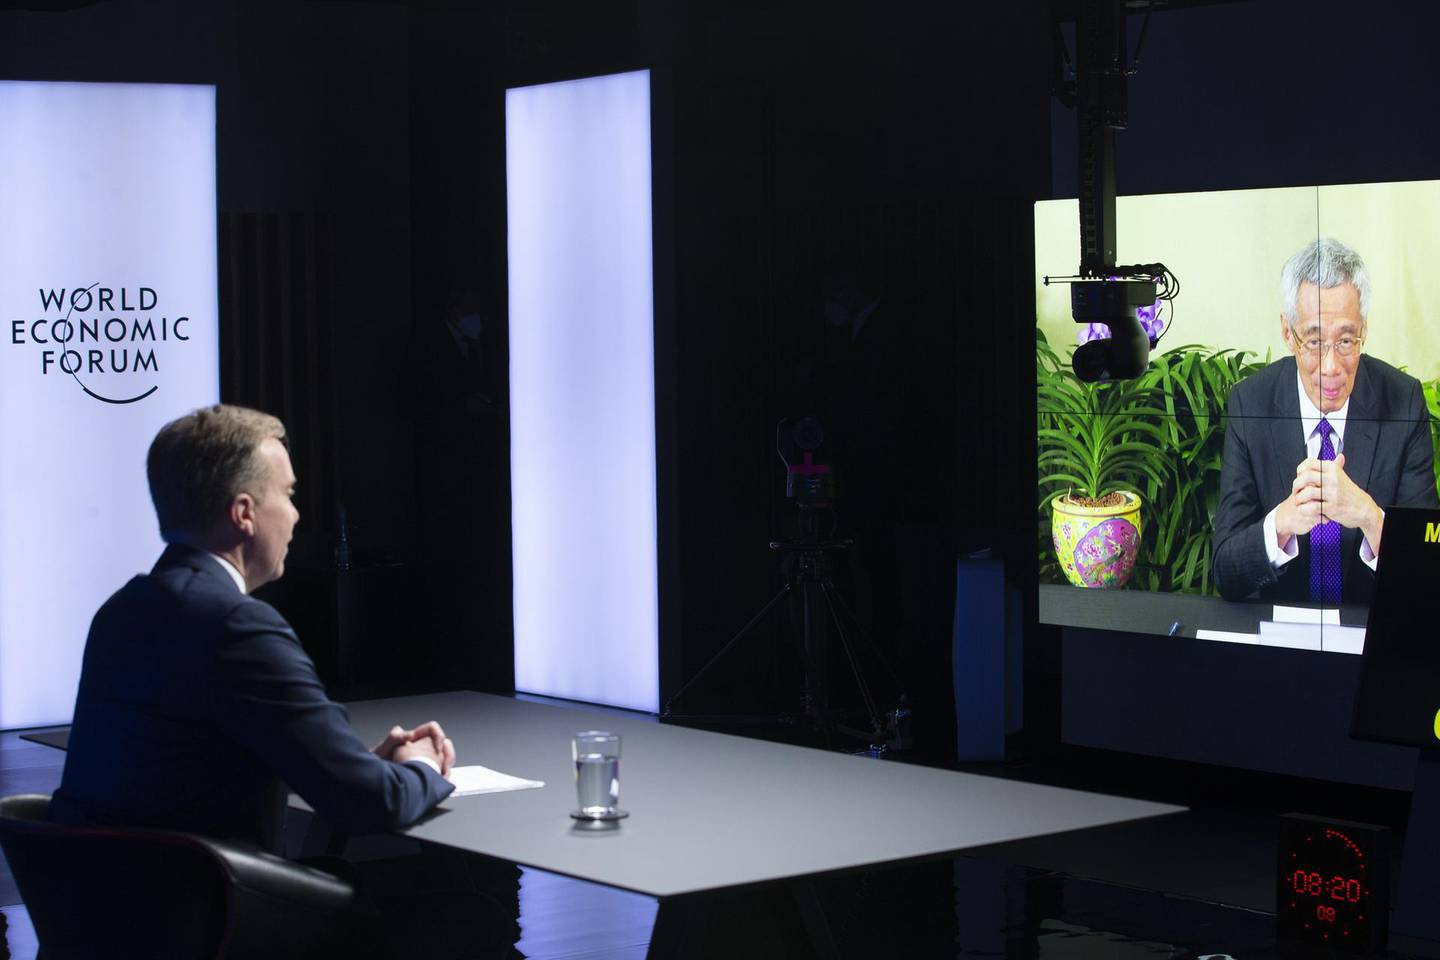 epa08972436 Norwegian Borge Brende (L), President and Member of the Managing Board of the World Economic Forum, WEF, looks on as Singapore's Prime Minister Lee Hsien Loong displayed in screens during a videoconference at the Davos Agenda, in Cologny, Switzerland, 29 January 2021. The Davos Agenda, held from 25 to 29 January 2021, is a online edition due to the coronavirus (COVID-19 disease) outbreak gather global leaders to shape the principles, policies and partnerships needed in this challenging new context.  EPA/SALVATORE DI NOLFI